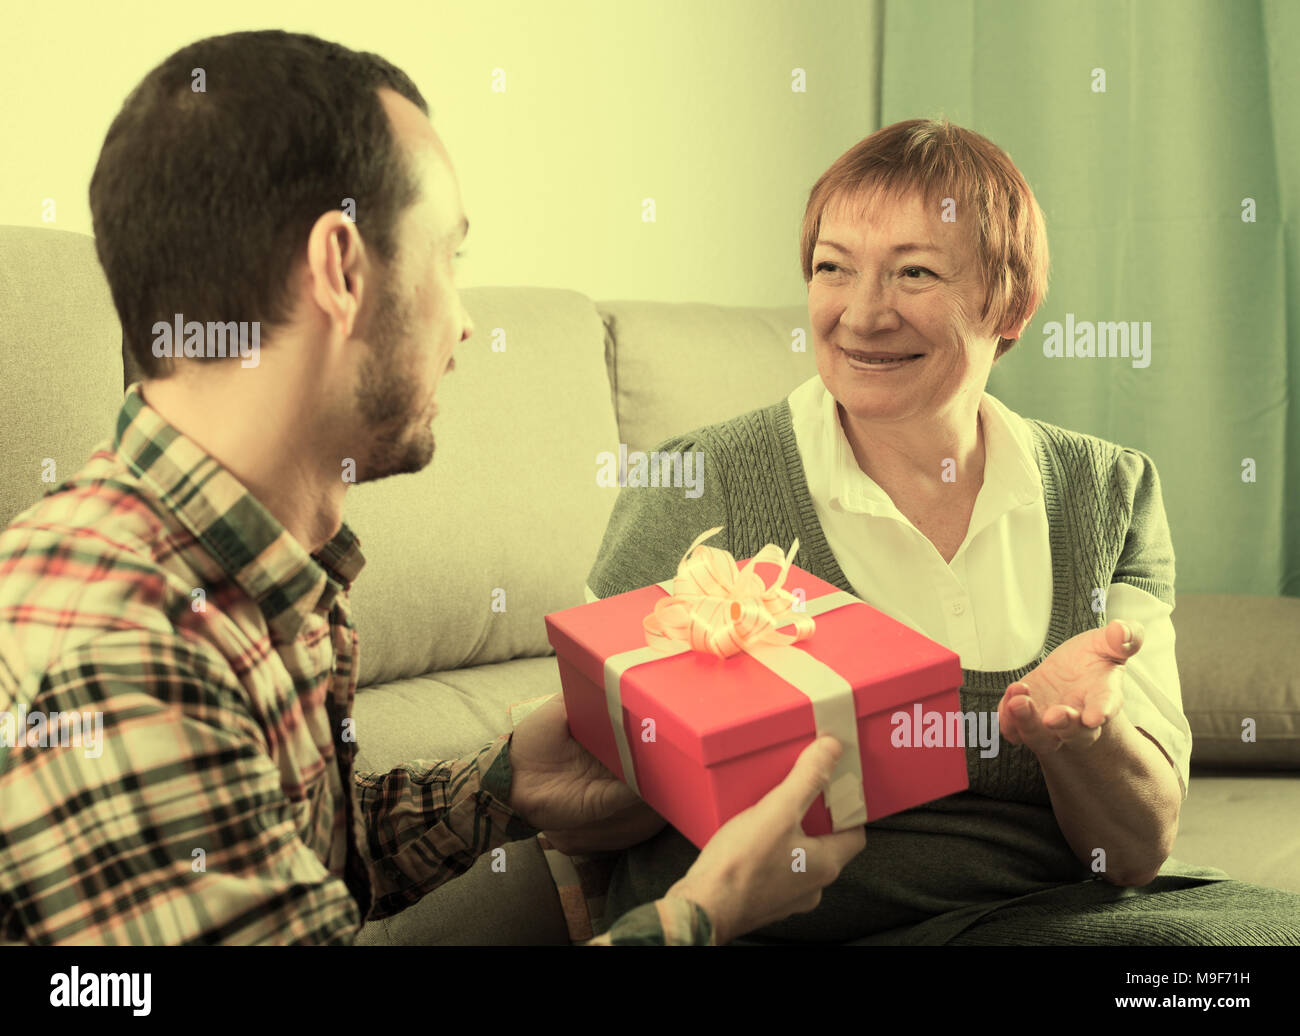 Son Gives Gift In Red Box To His Elderly Mother For Birthday